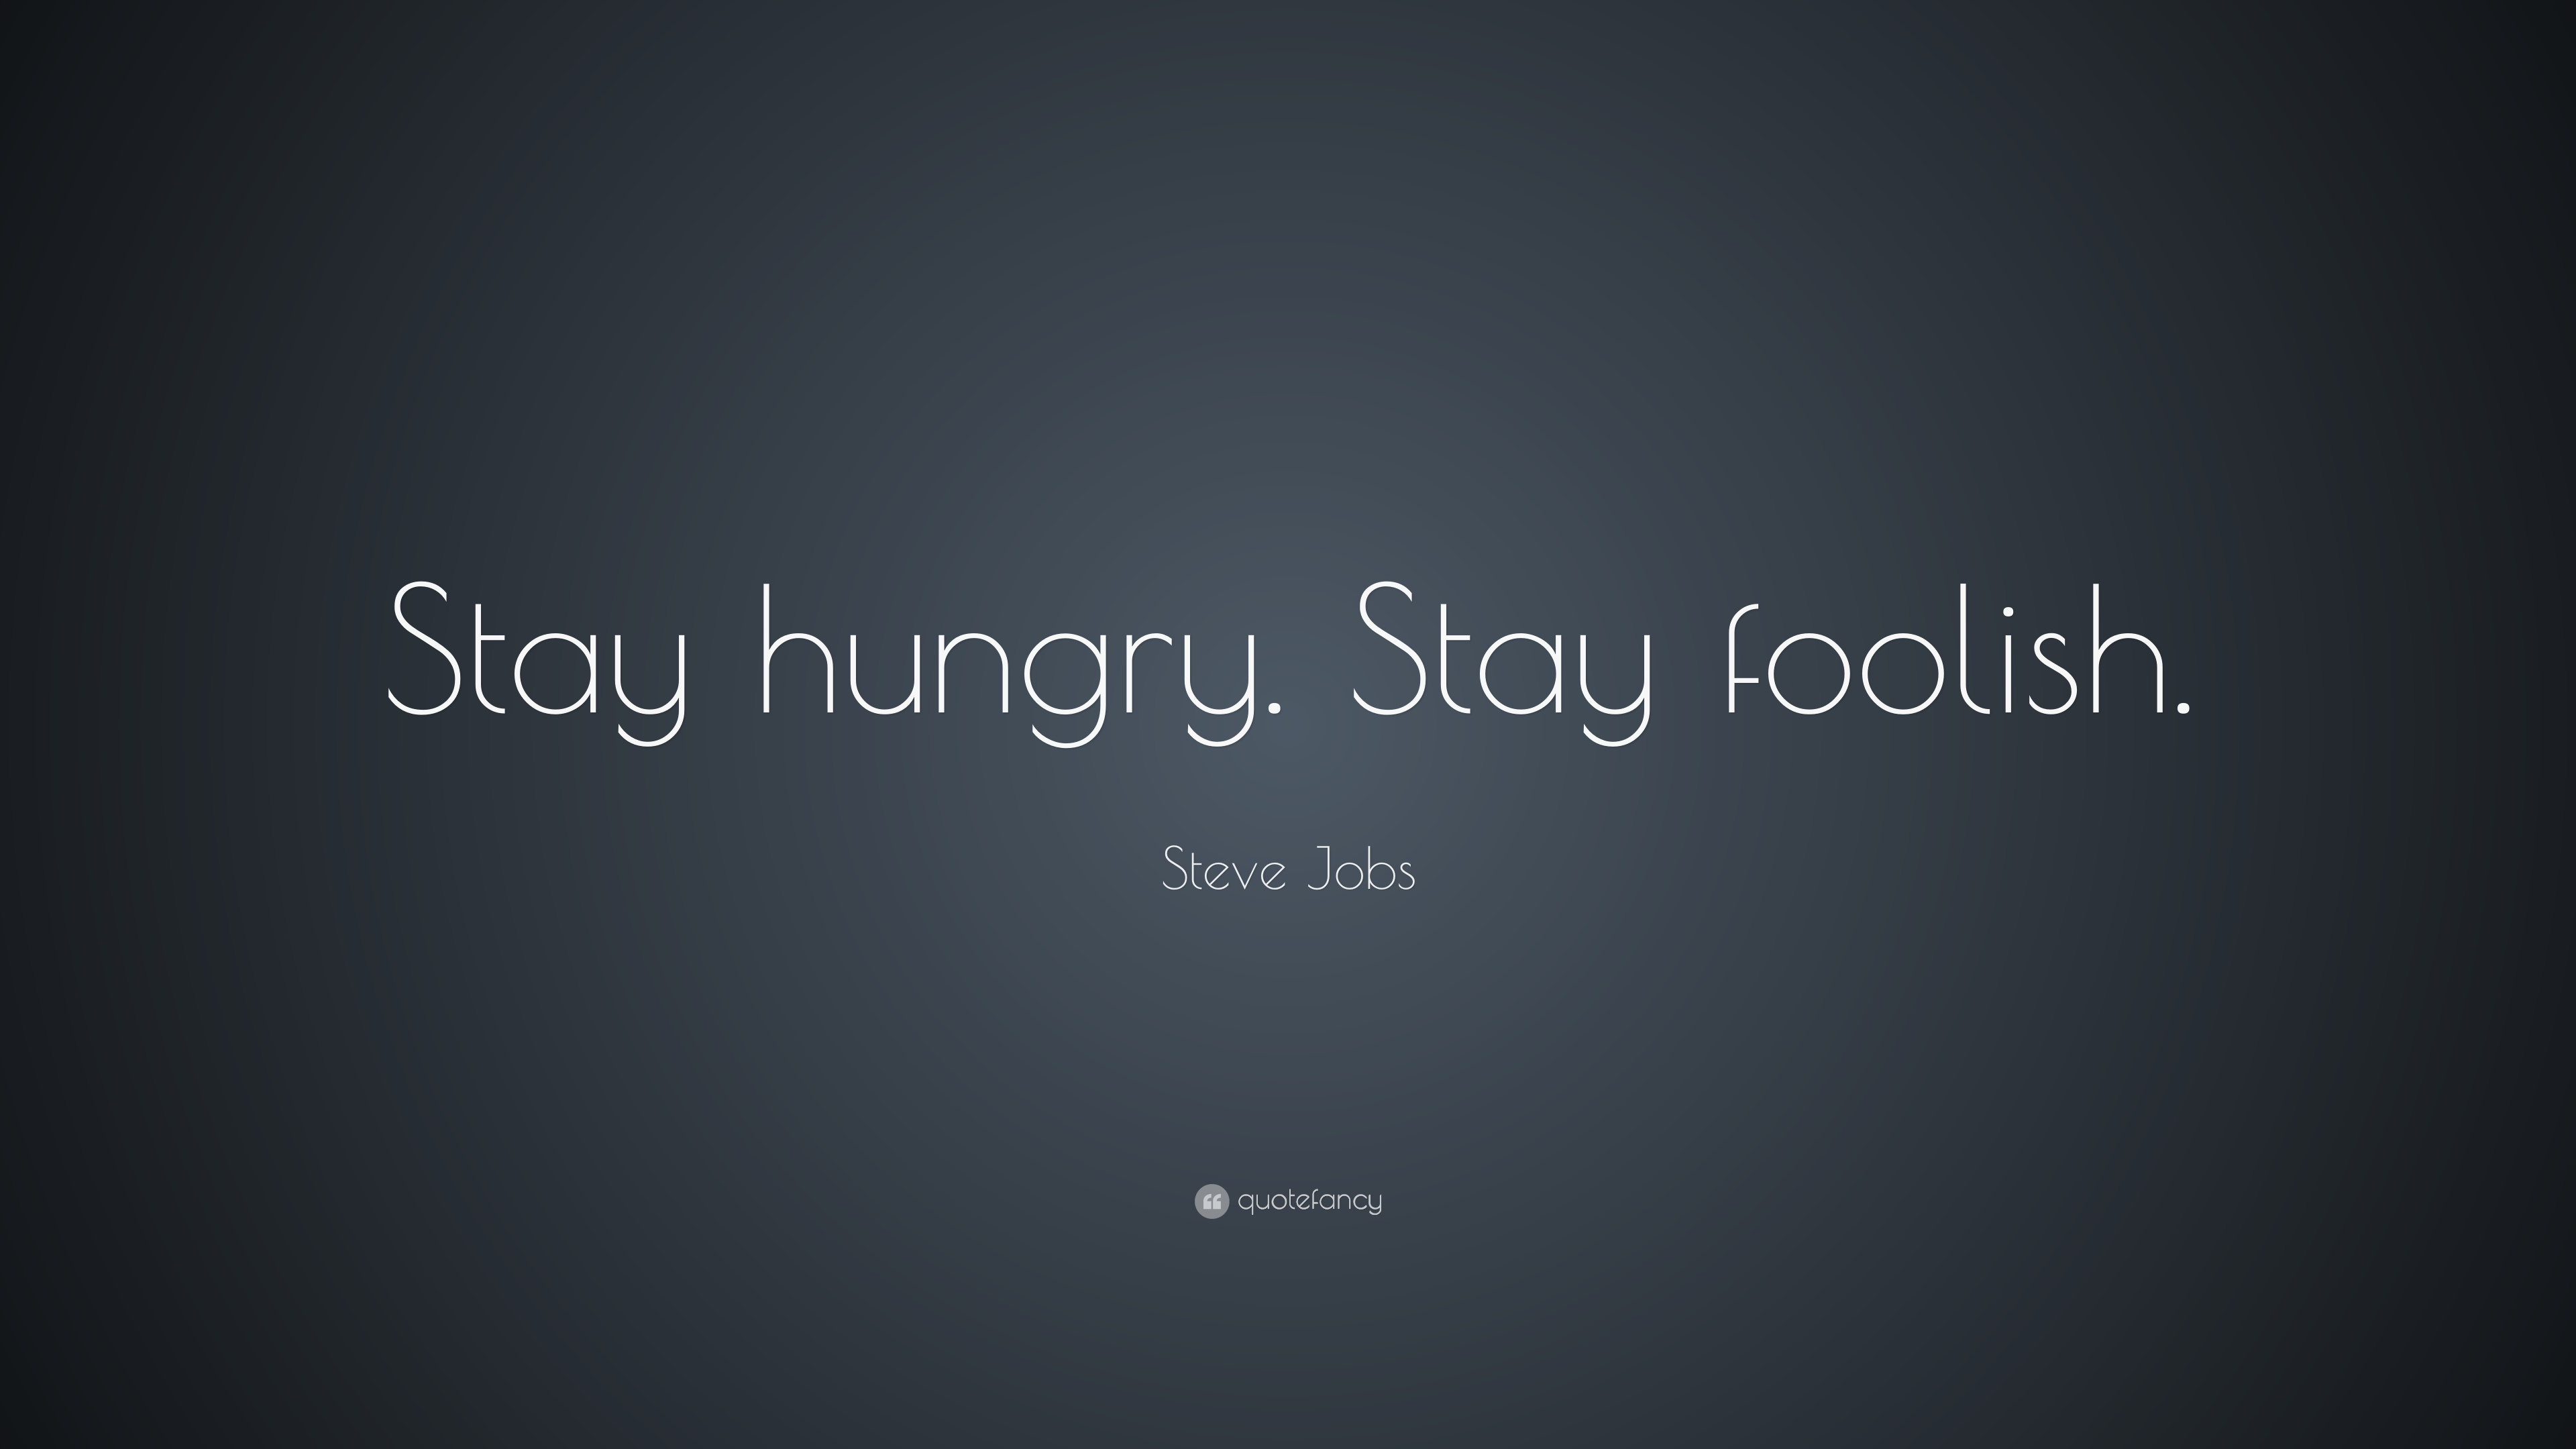 Steve Jobs Motivational Quotes Wallpaper Steve Jobs Quote Stay Hungry Stay Foolish 19